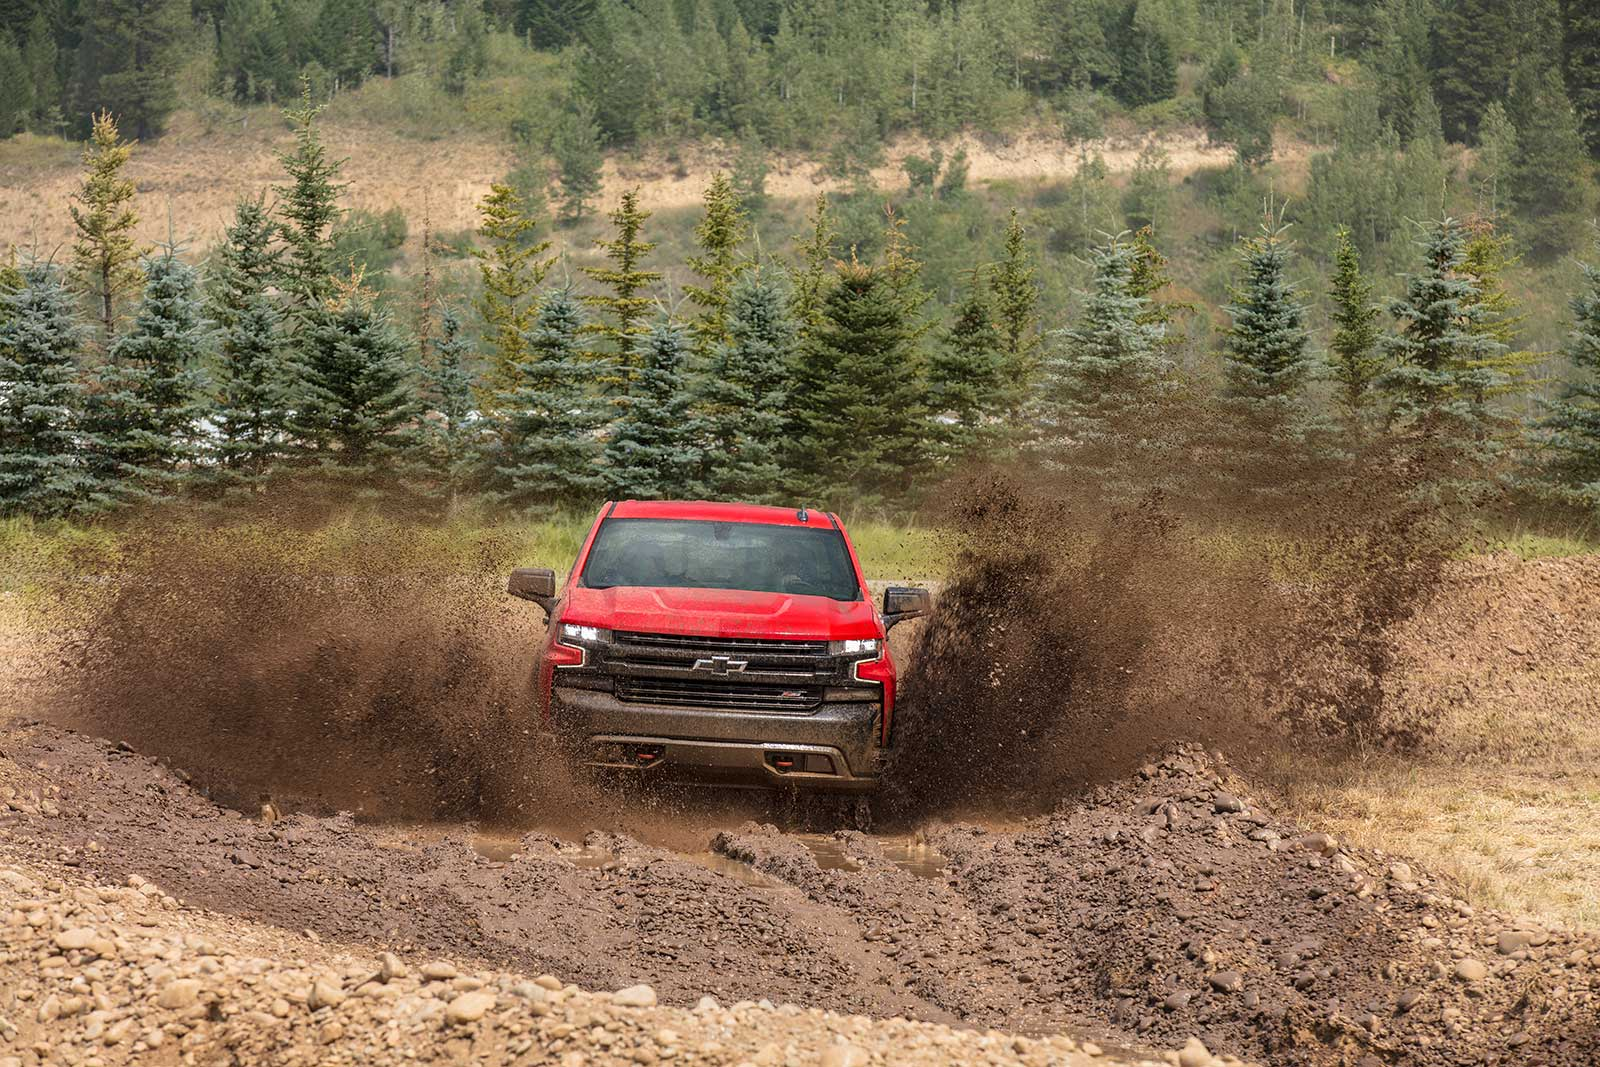 2019 Chevrolet Silverado Review - GM Inside News